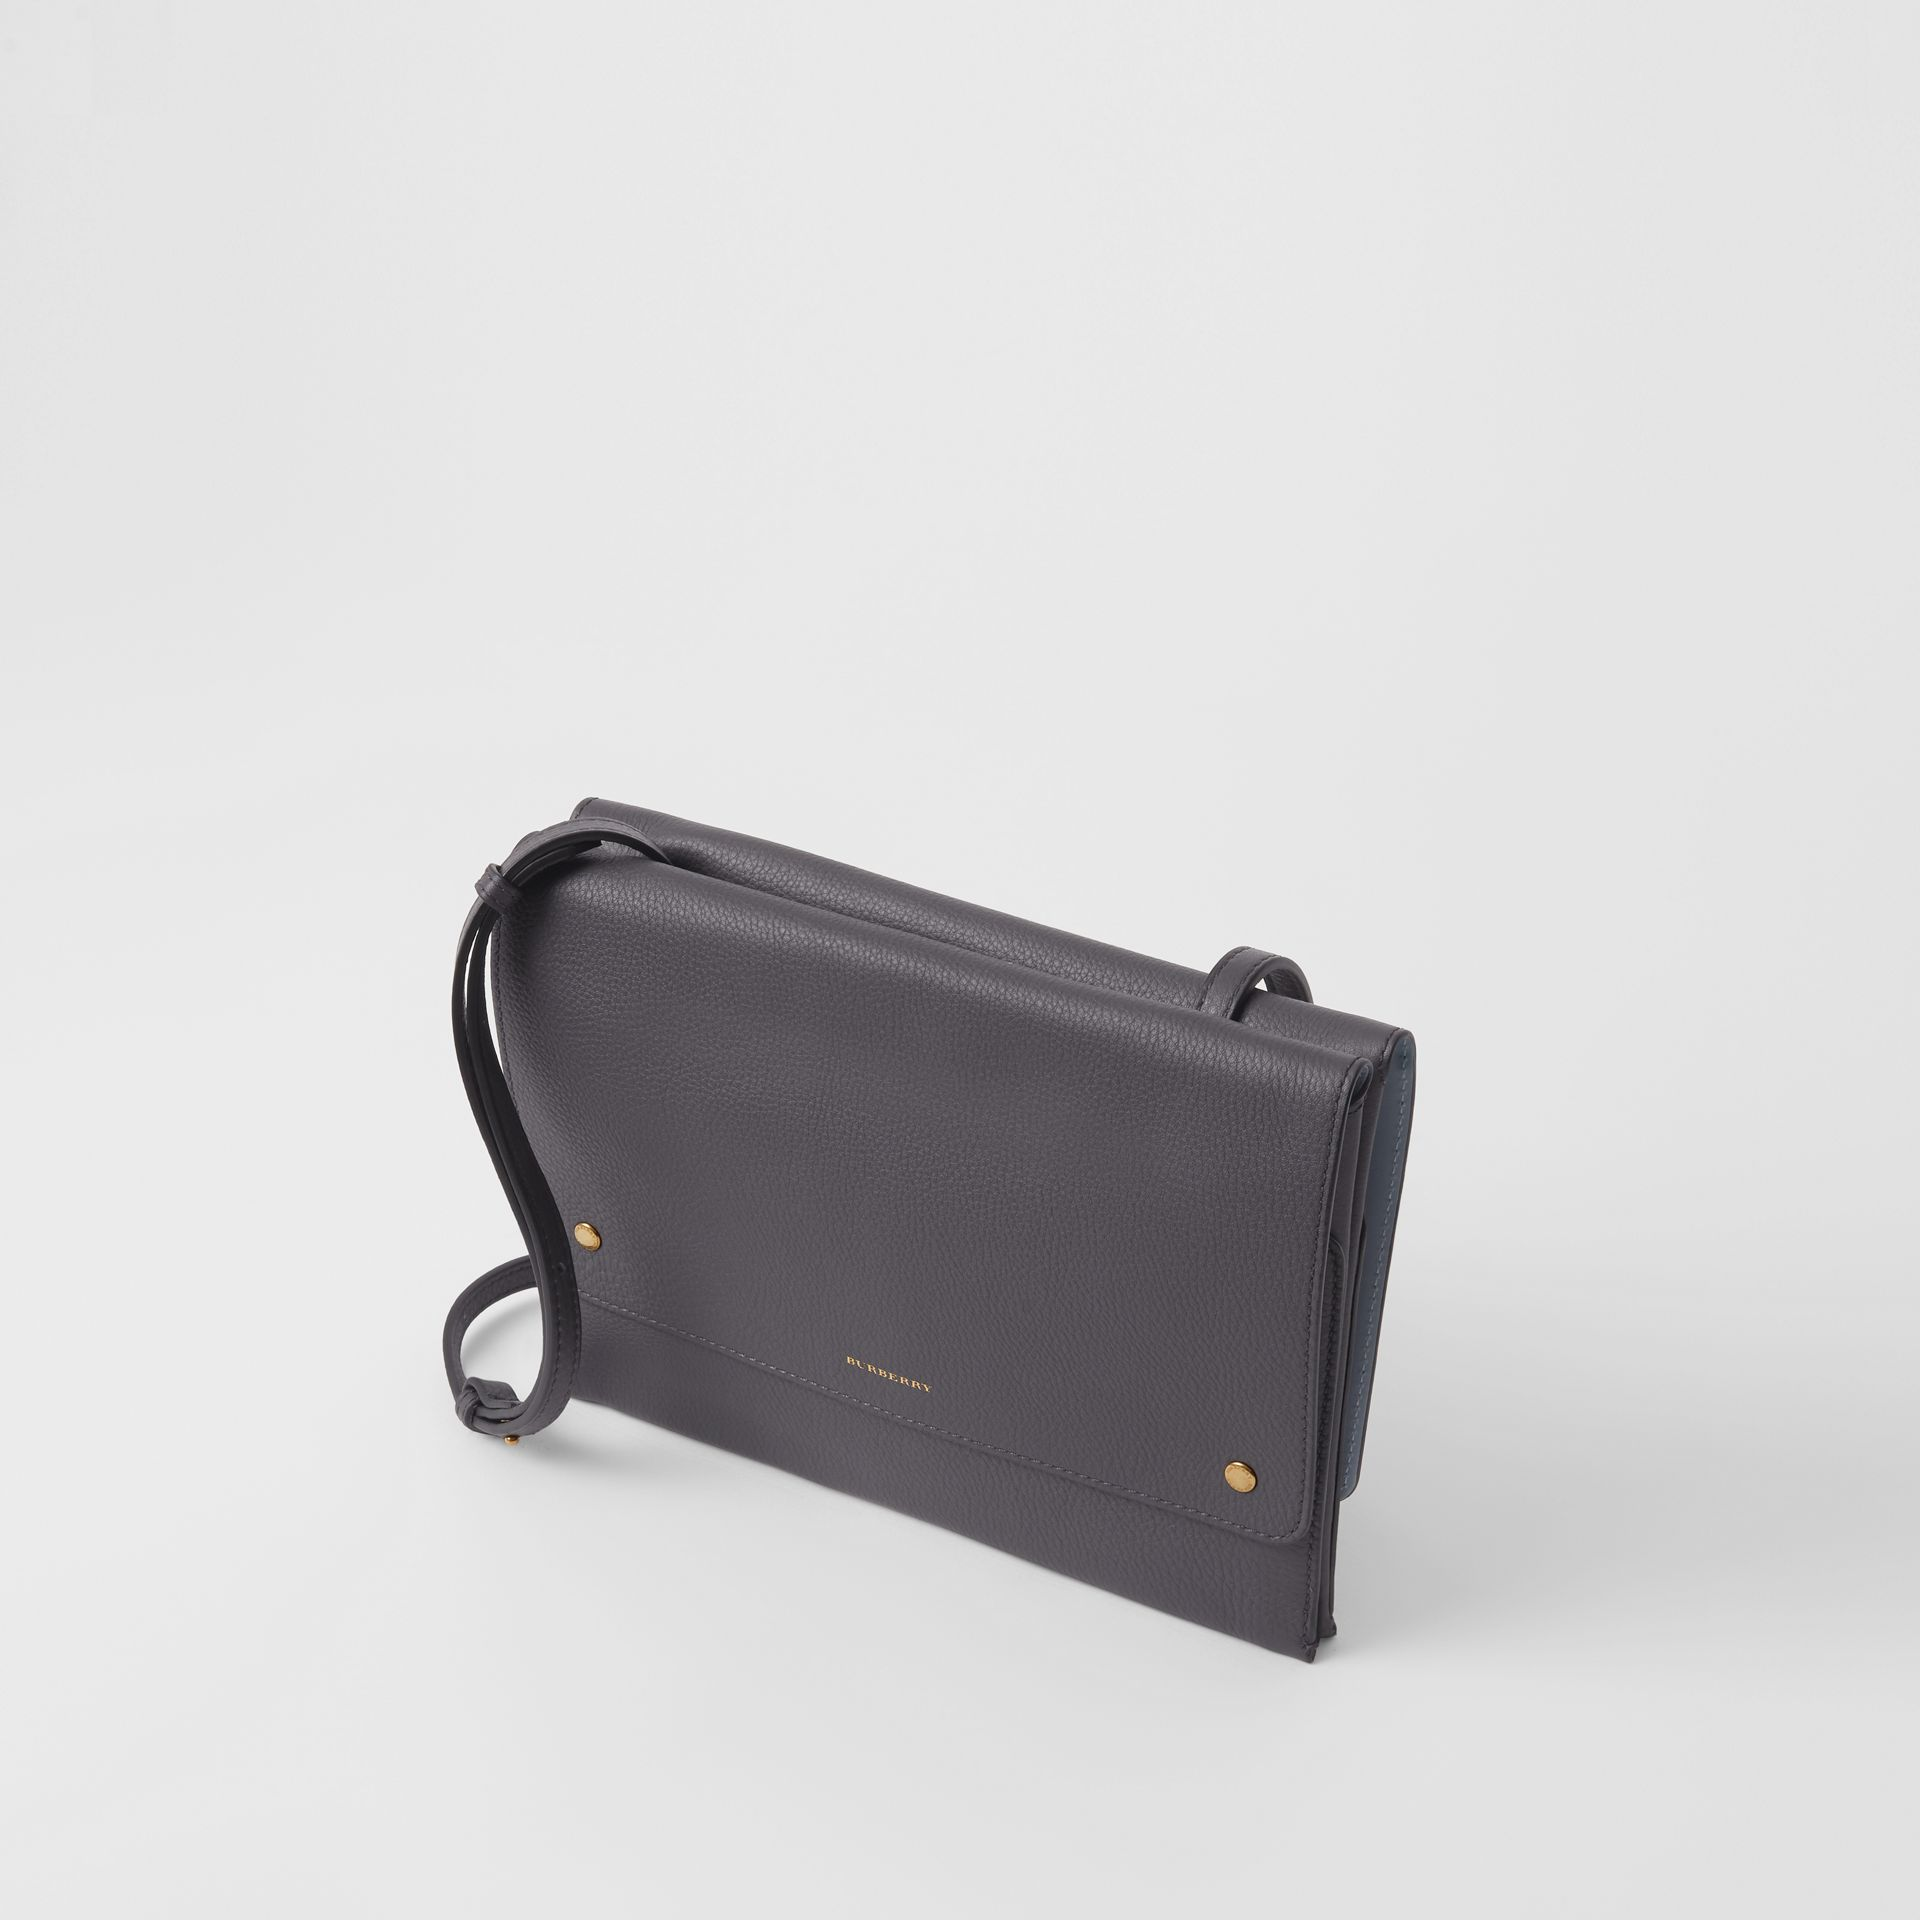 Leather Envelope Crossbody Bag in Charcoal Grey - Women | Burberry Australia - gallery image 2